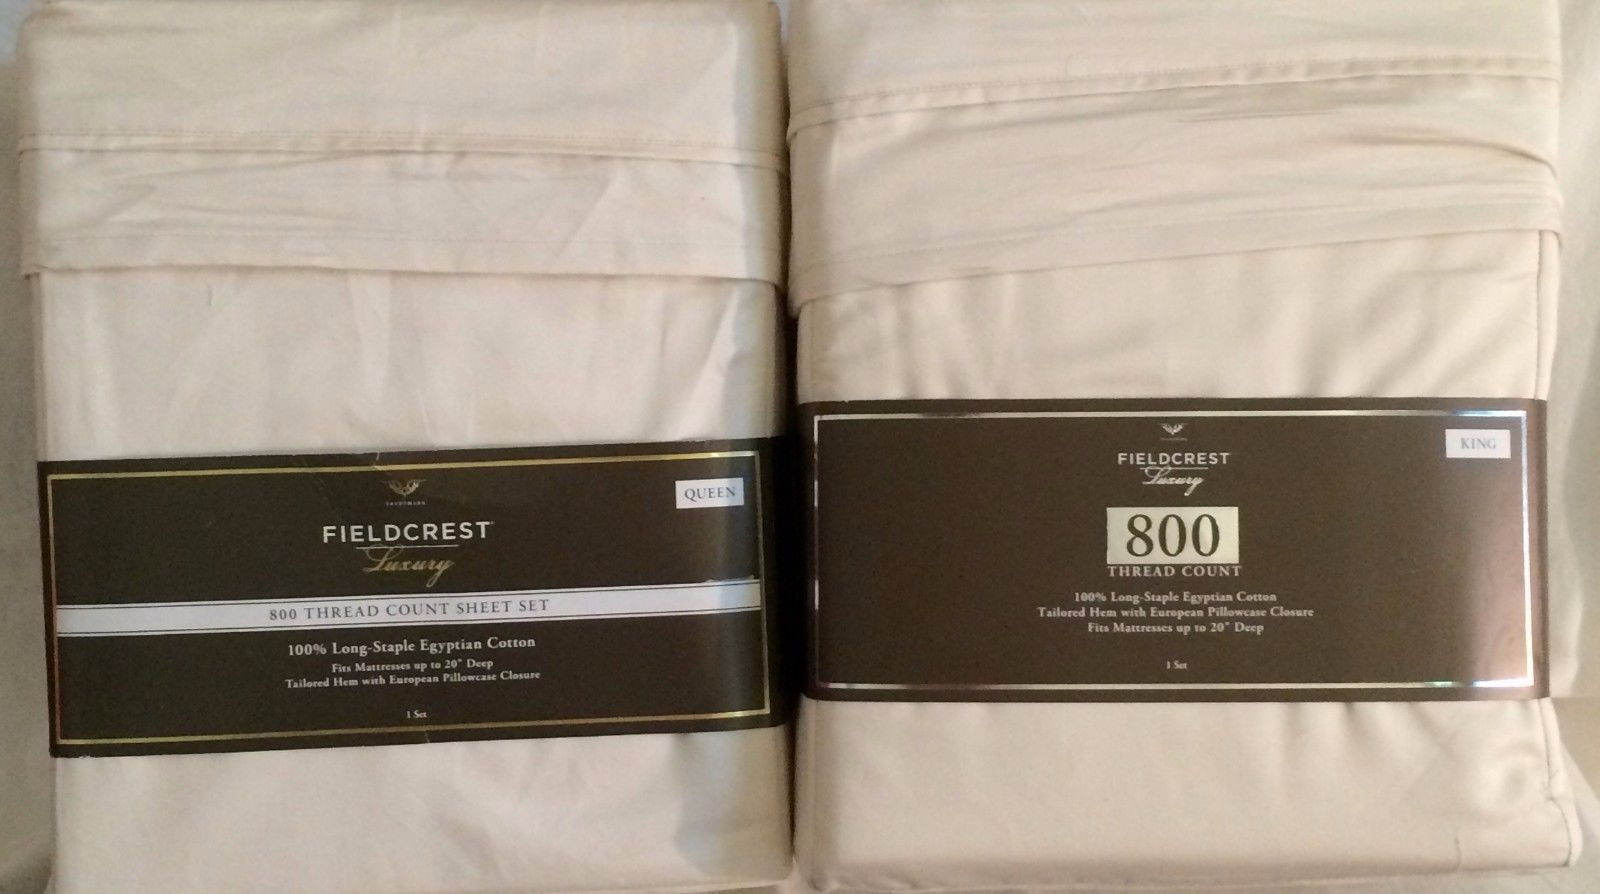 Fieldcrest Cannon Sheets | Fieldcrest Luxury Sheets | Fieldcrest Duvet